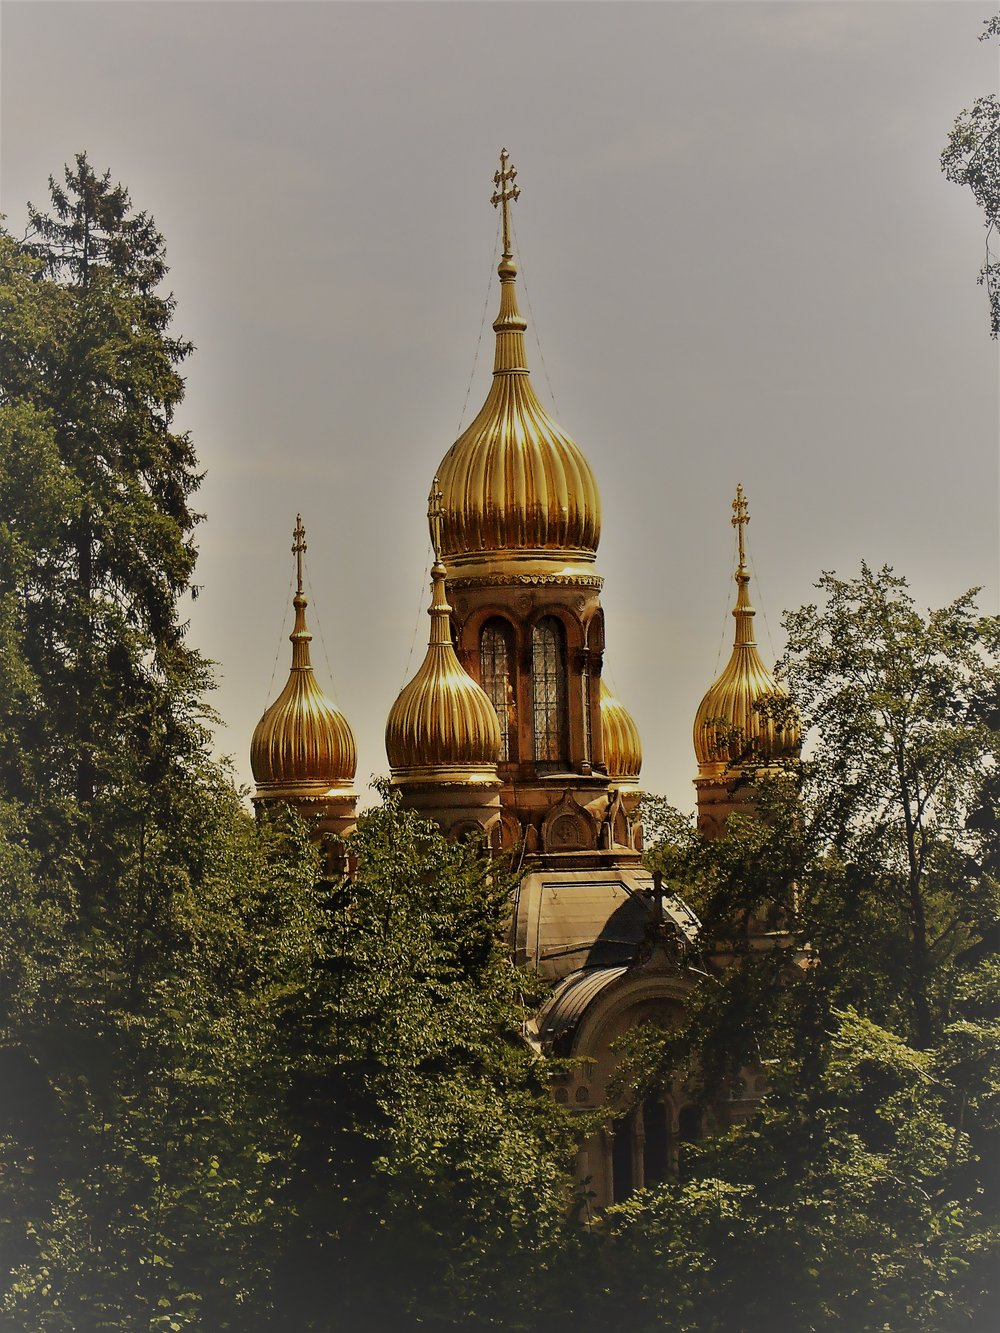 Russian orthodox church in Wiesbaden seen from the direction of Neroberg (21.05.2018)